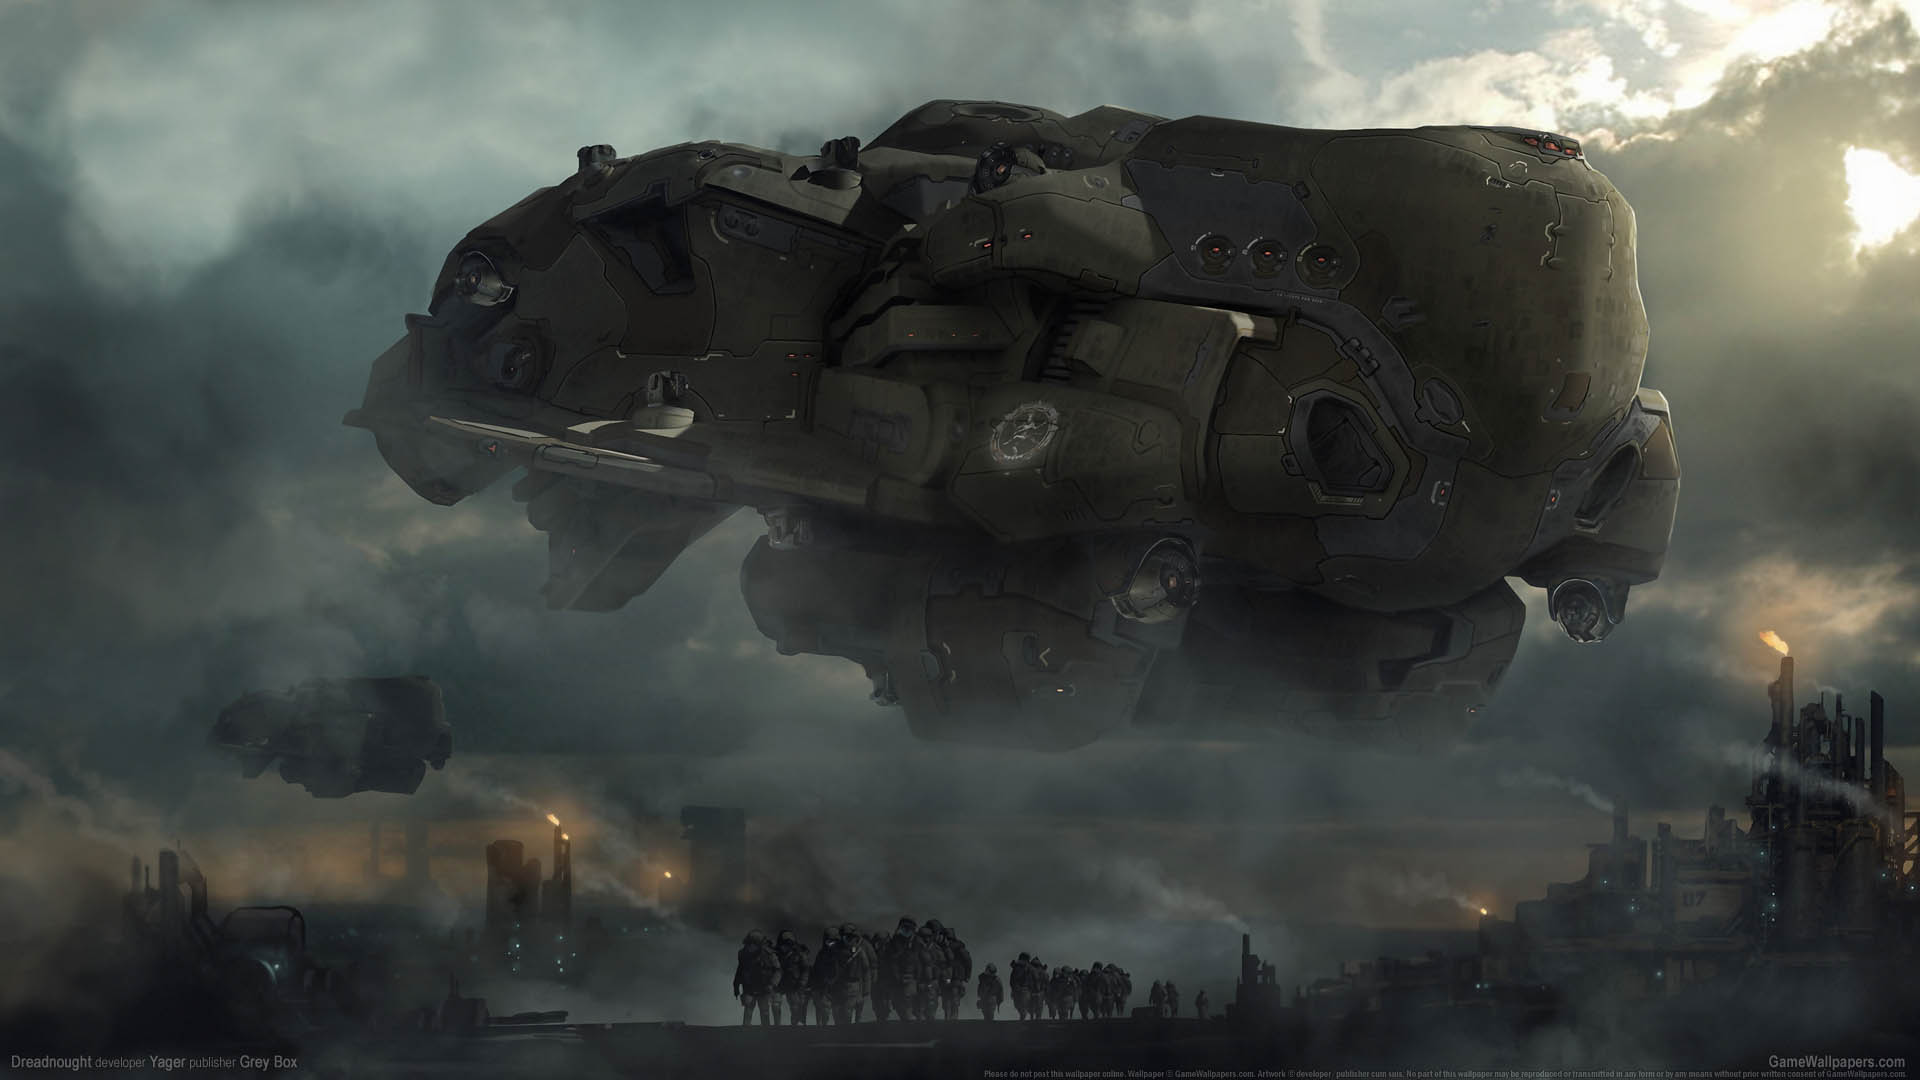 wallpaper_dreadnought_14_1920x1080.jpg